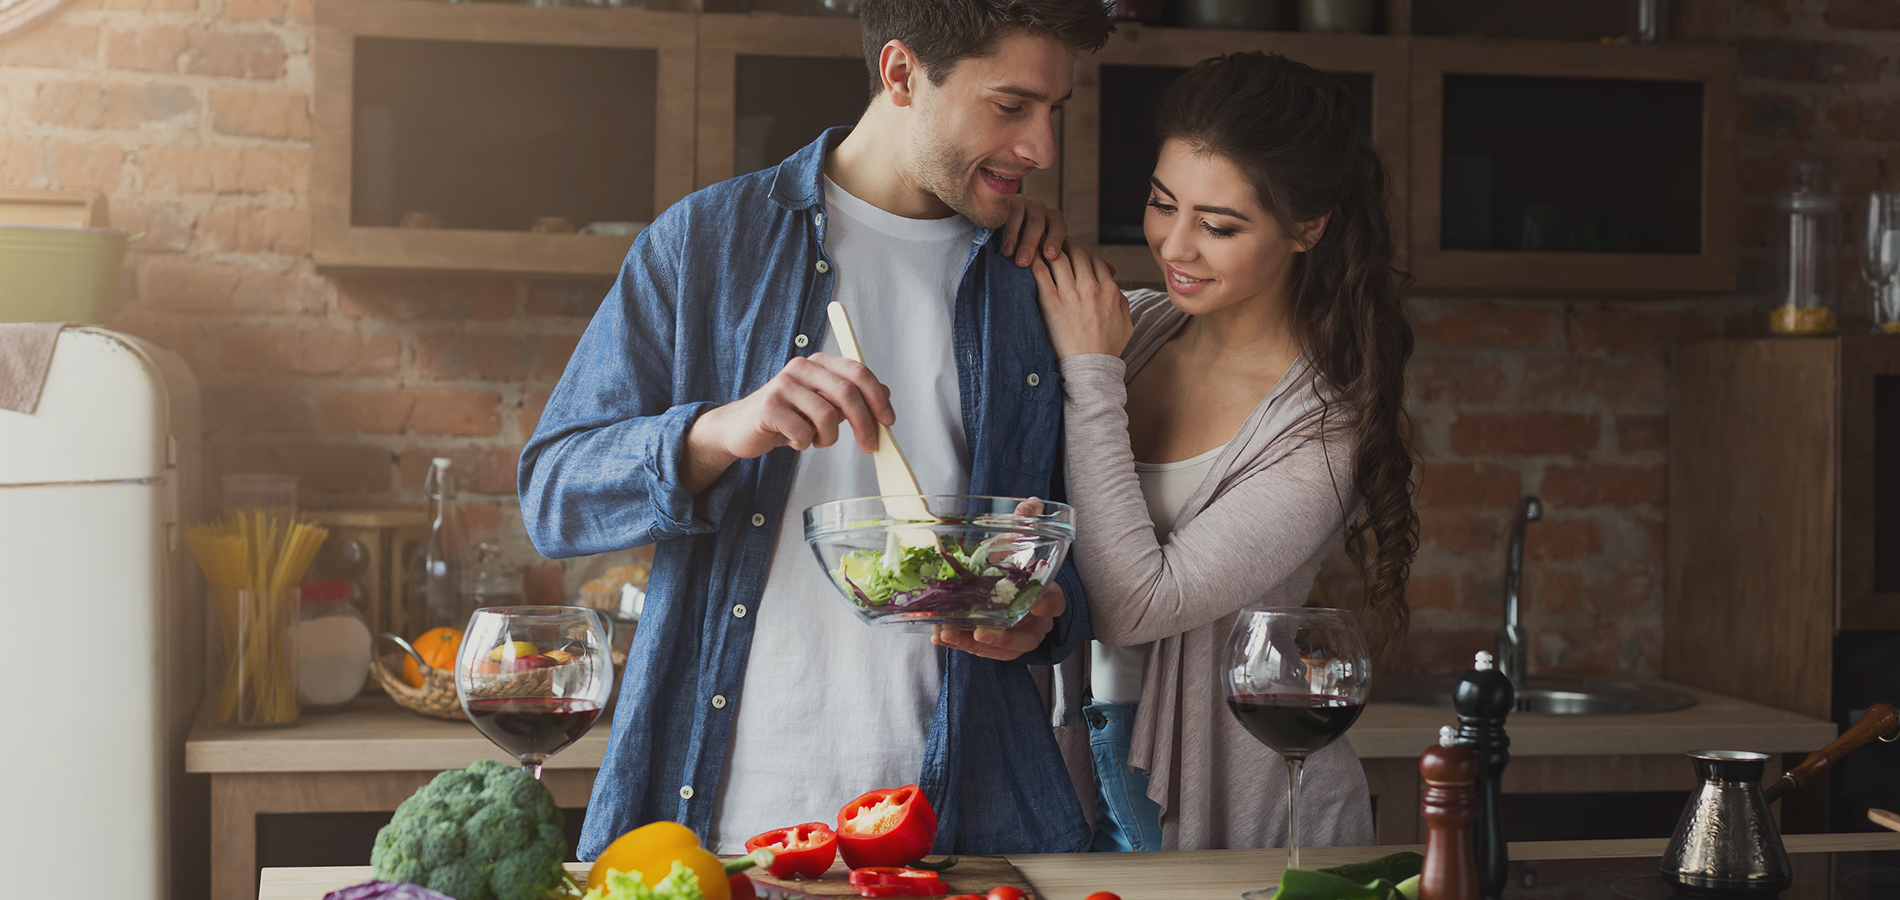 Couple making a healthy salad in the kitchen